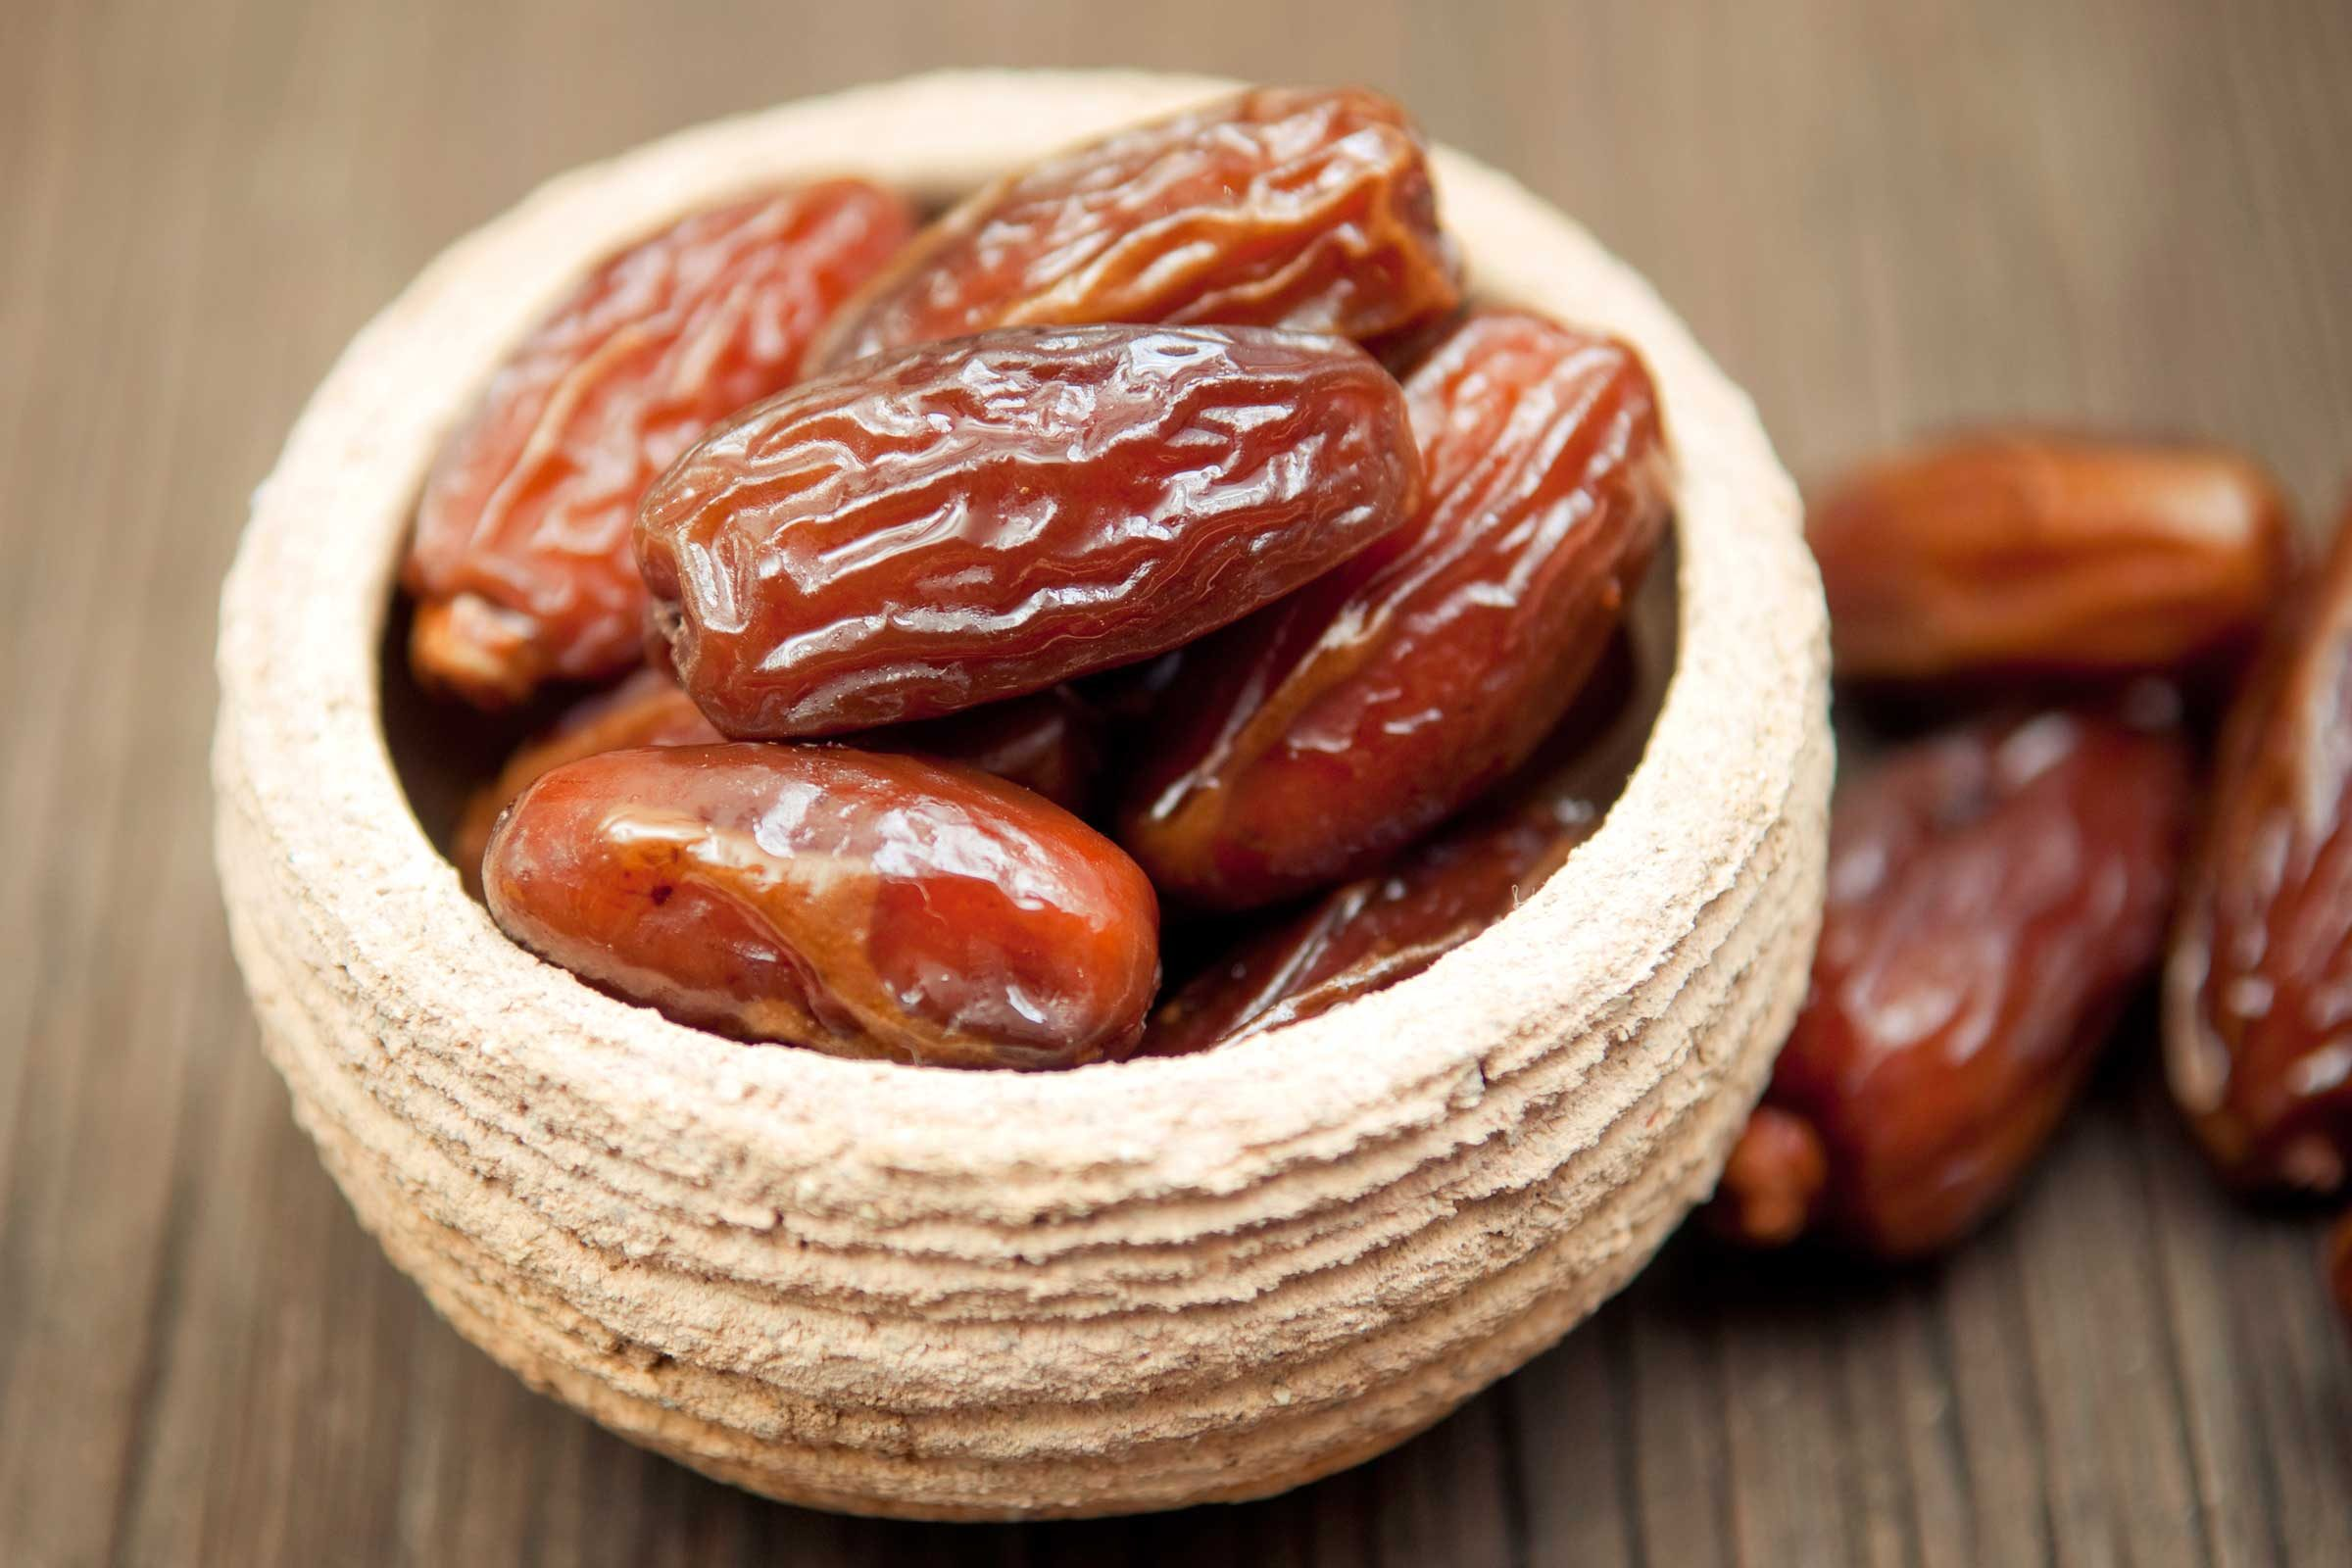 Have dates for dessert